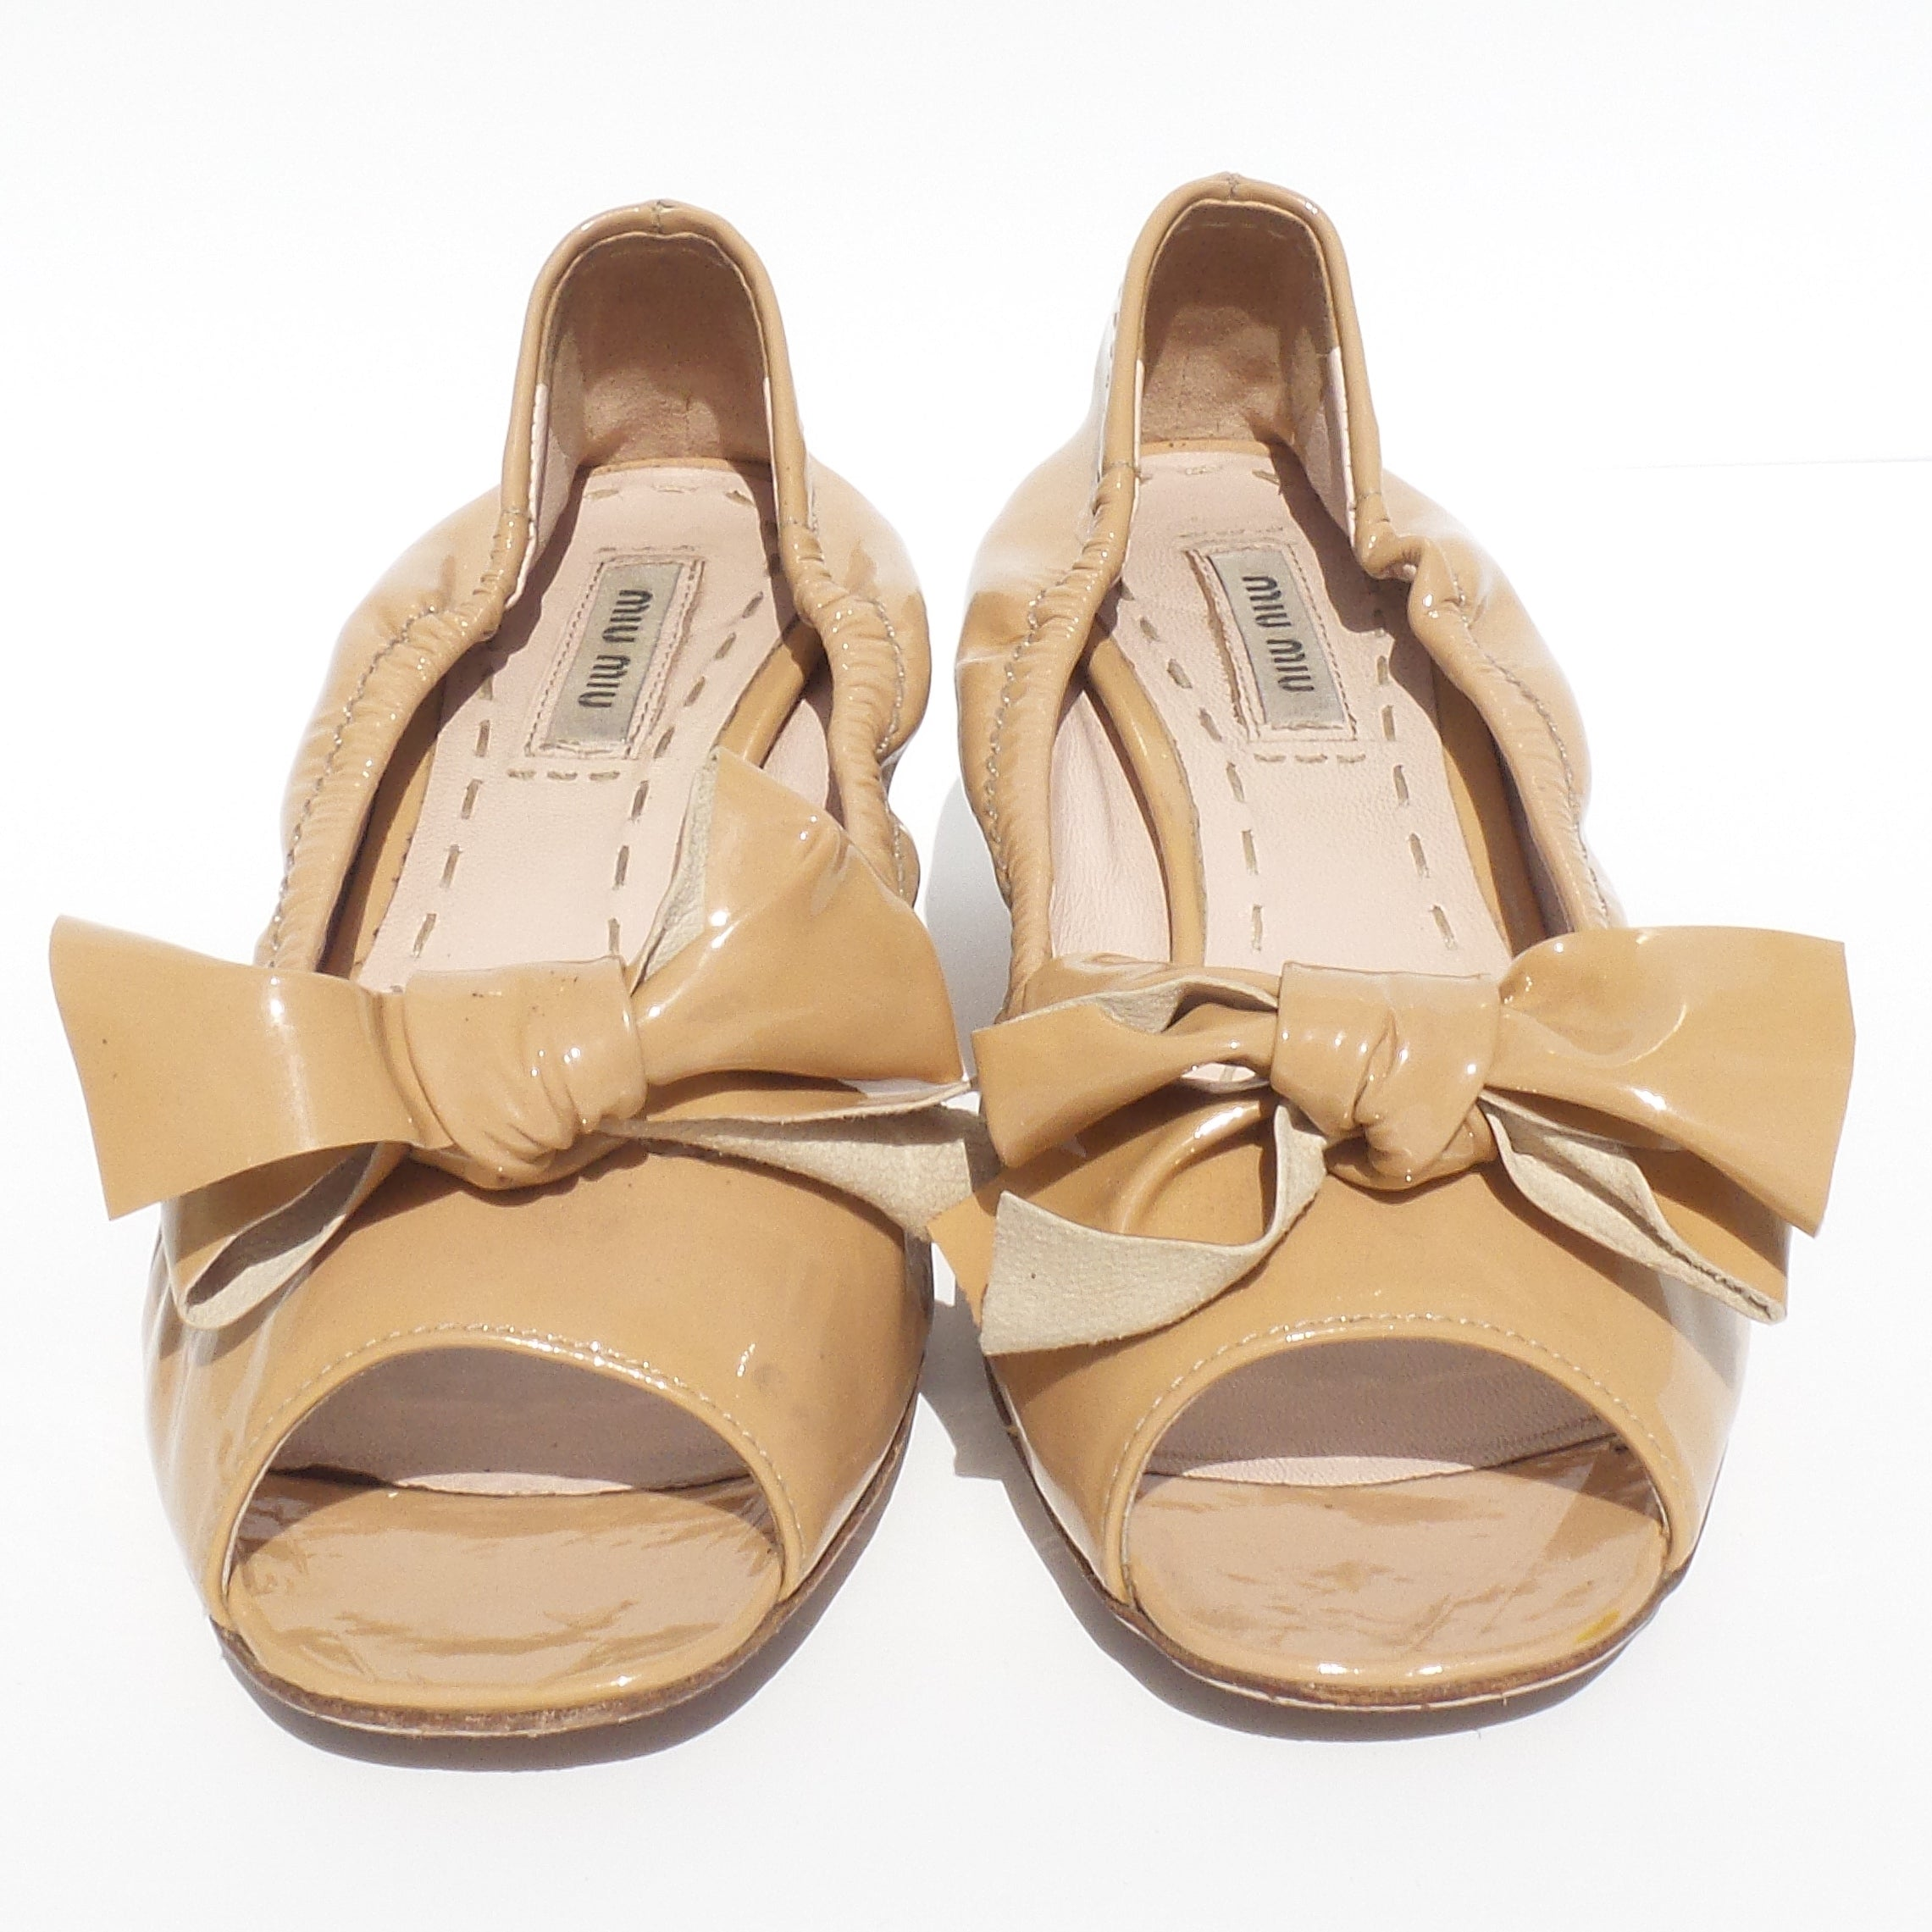 5d7955d6ba7 MIU MIU Beige Tan Nude Patent Leather Bow Open Toe Crystal Heel Scrunch  Pumps 37